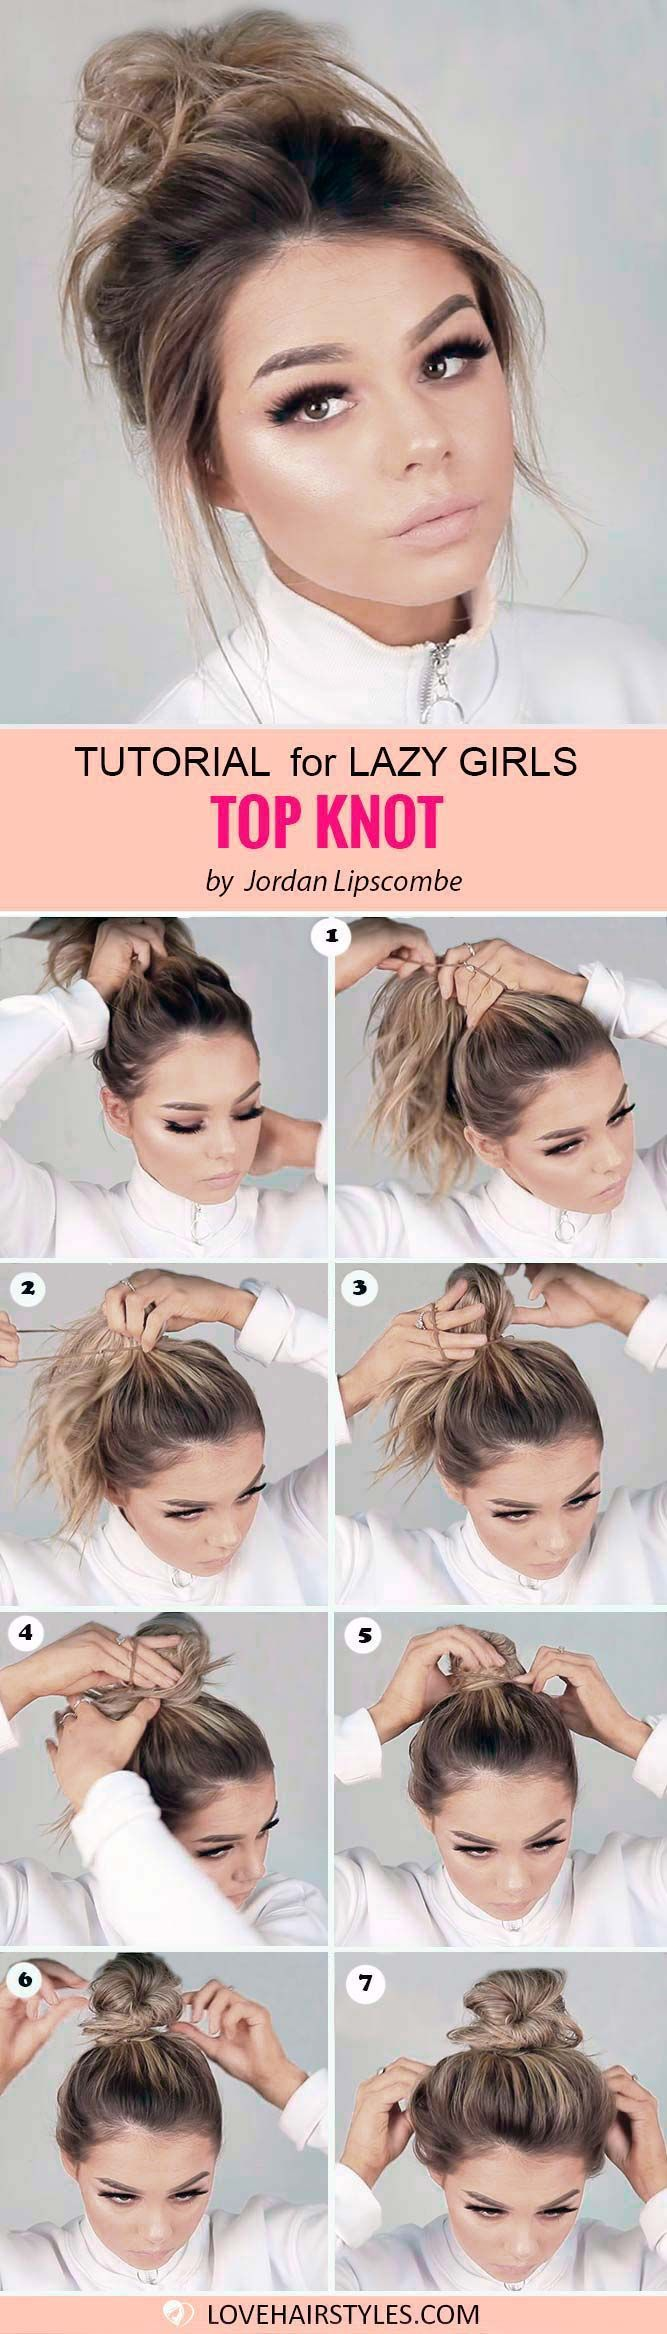 Easy hairstyles for medium hair exist – lazy ladies, it is time to rejoice! Has it ever occurred to you that you are entirely bored of that same way you style your hair all the time? Well, this is where we come in, with our endless range of fresh, stylish